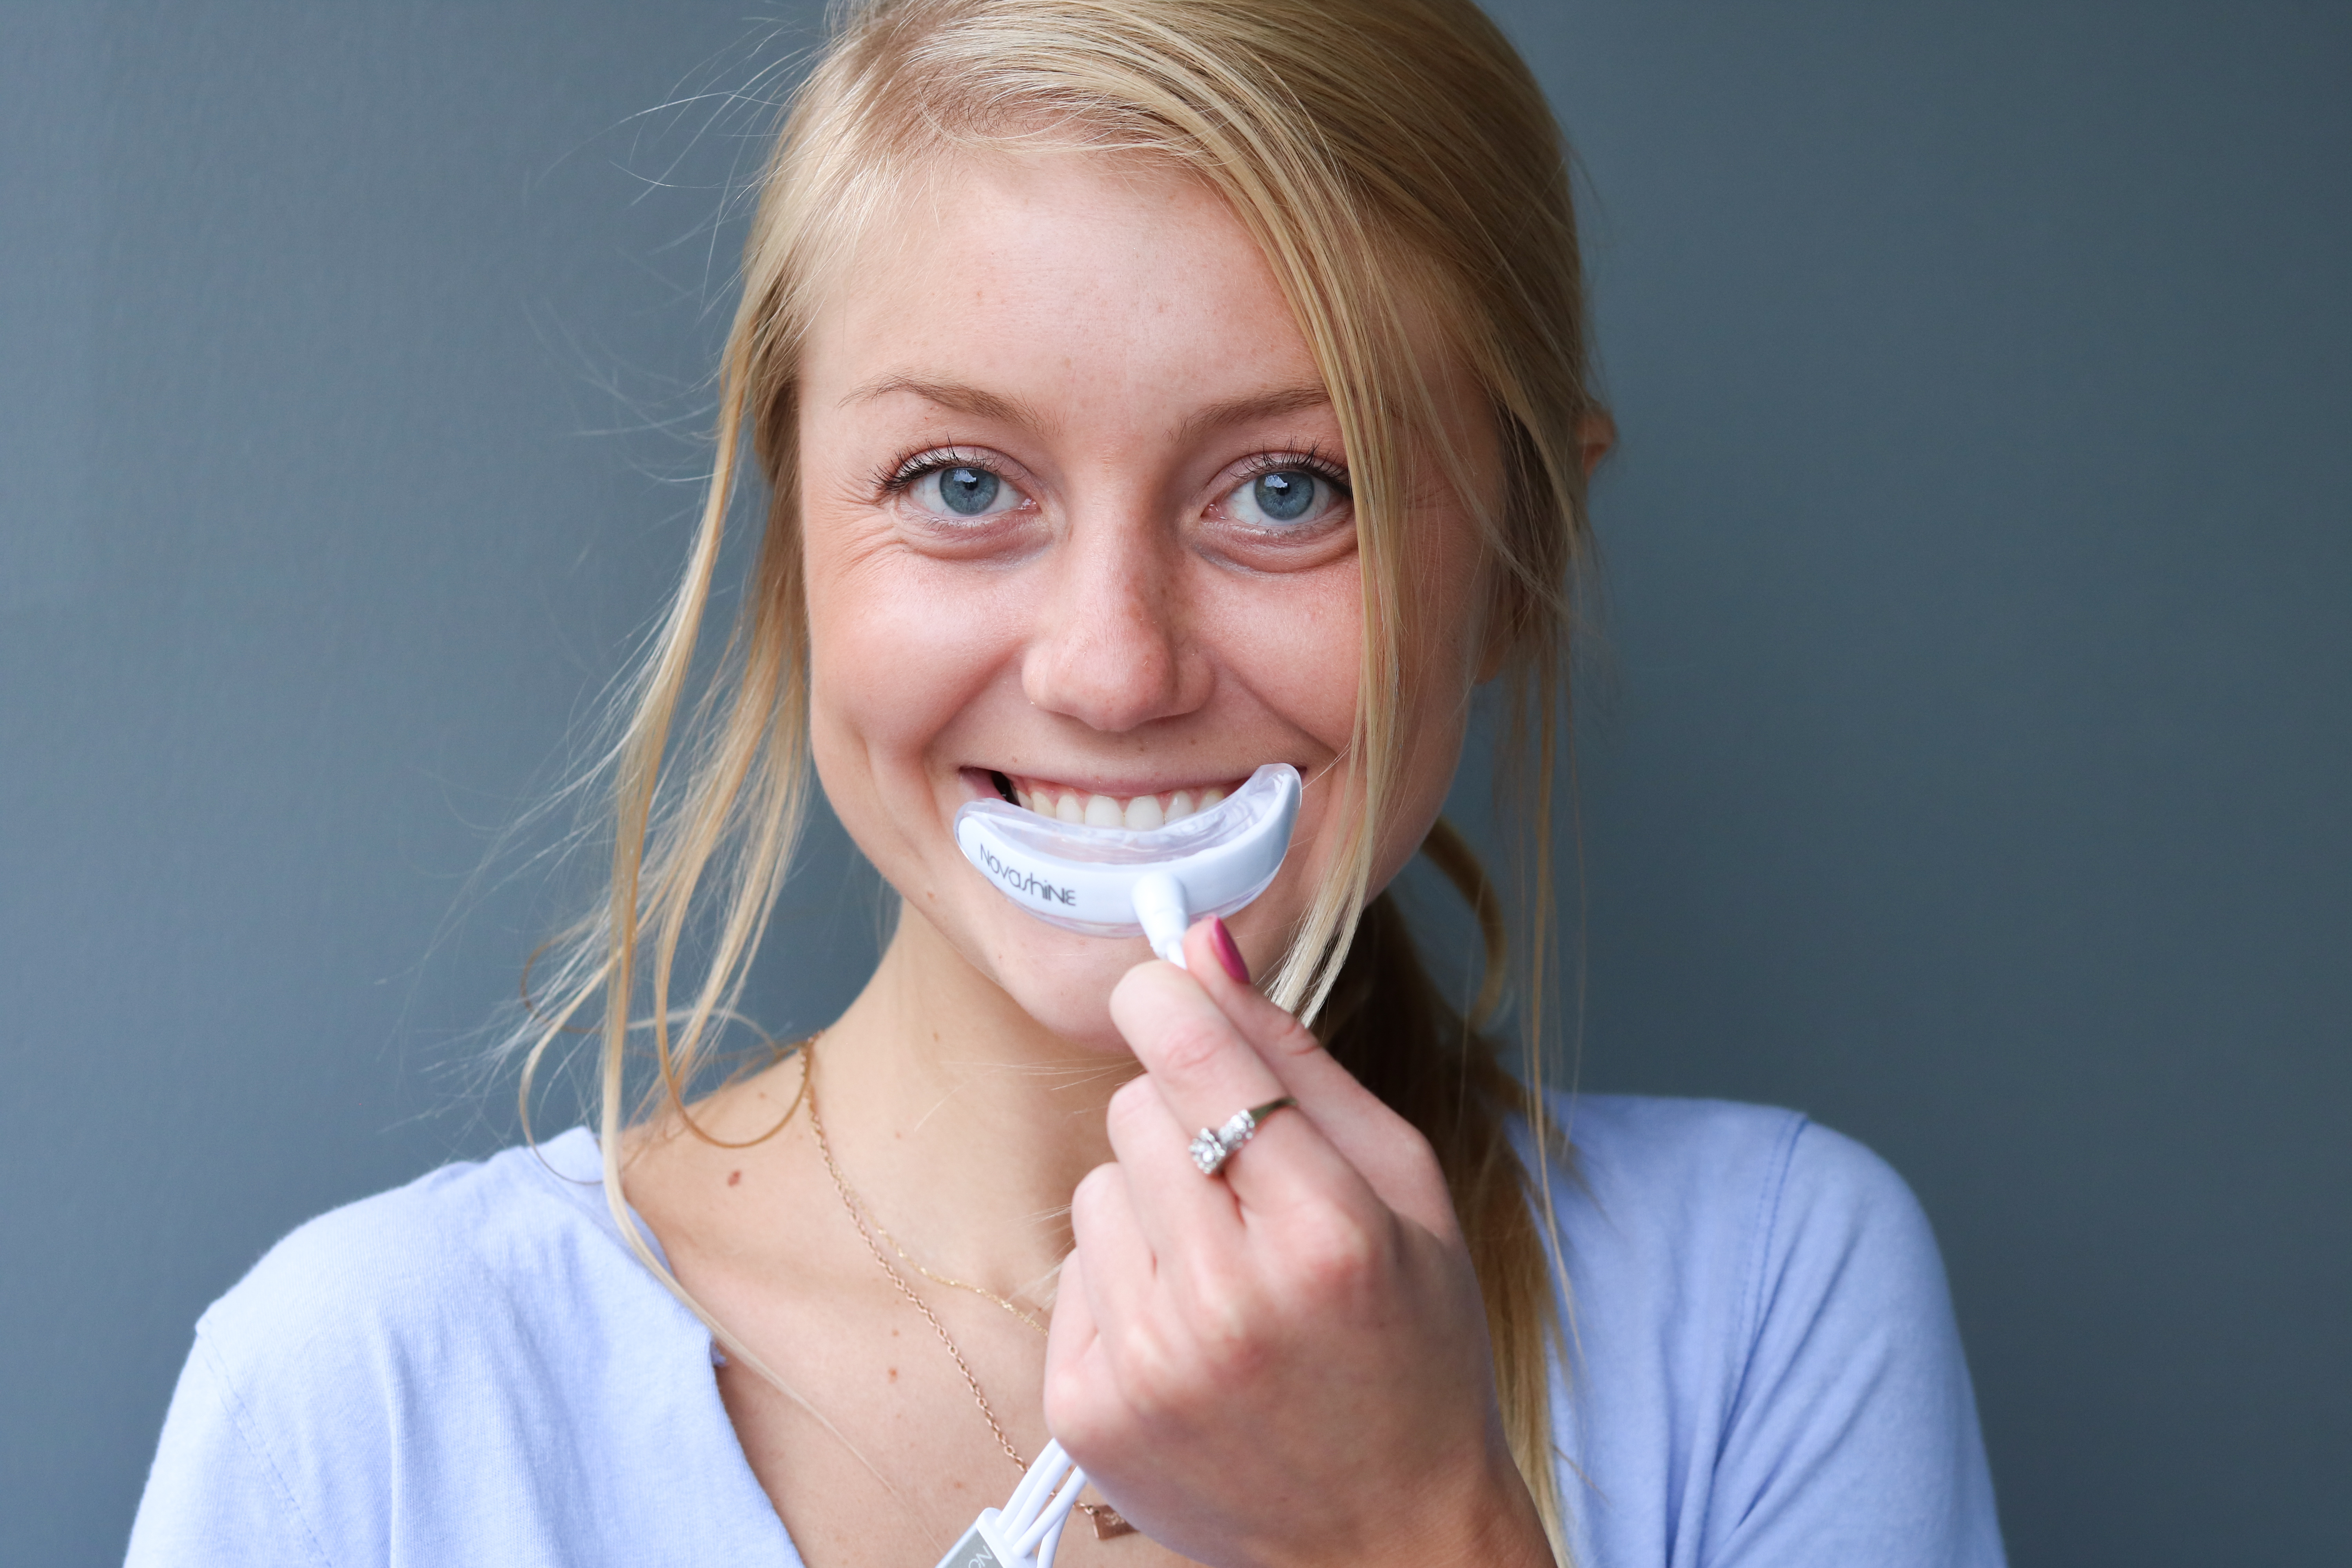 DIY Teeth Whitening Kit